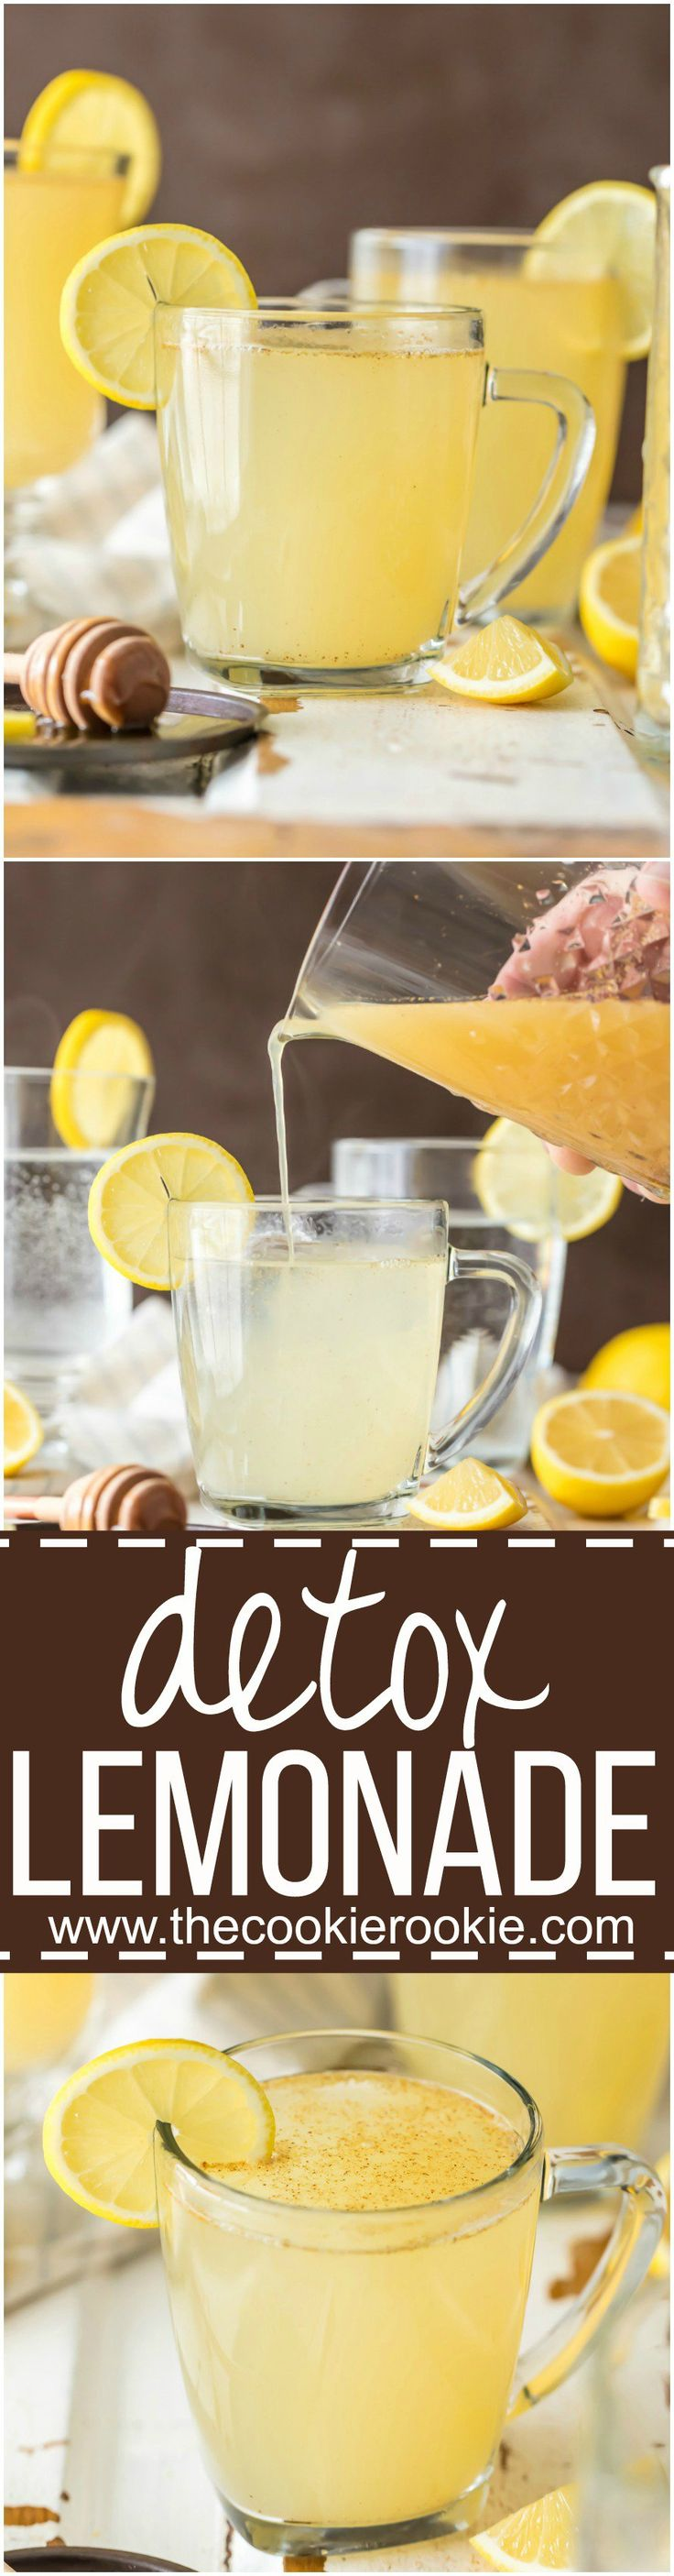 Easy detox drink recipes